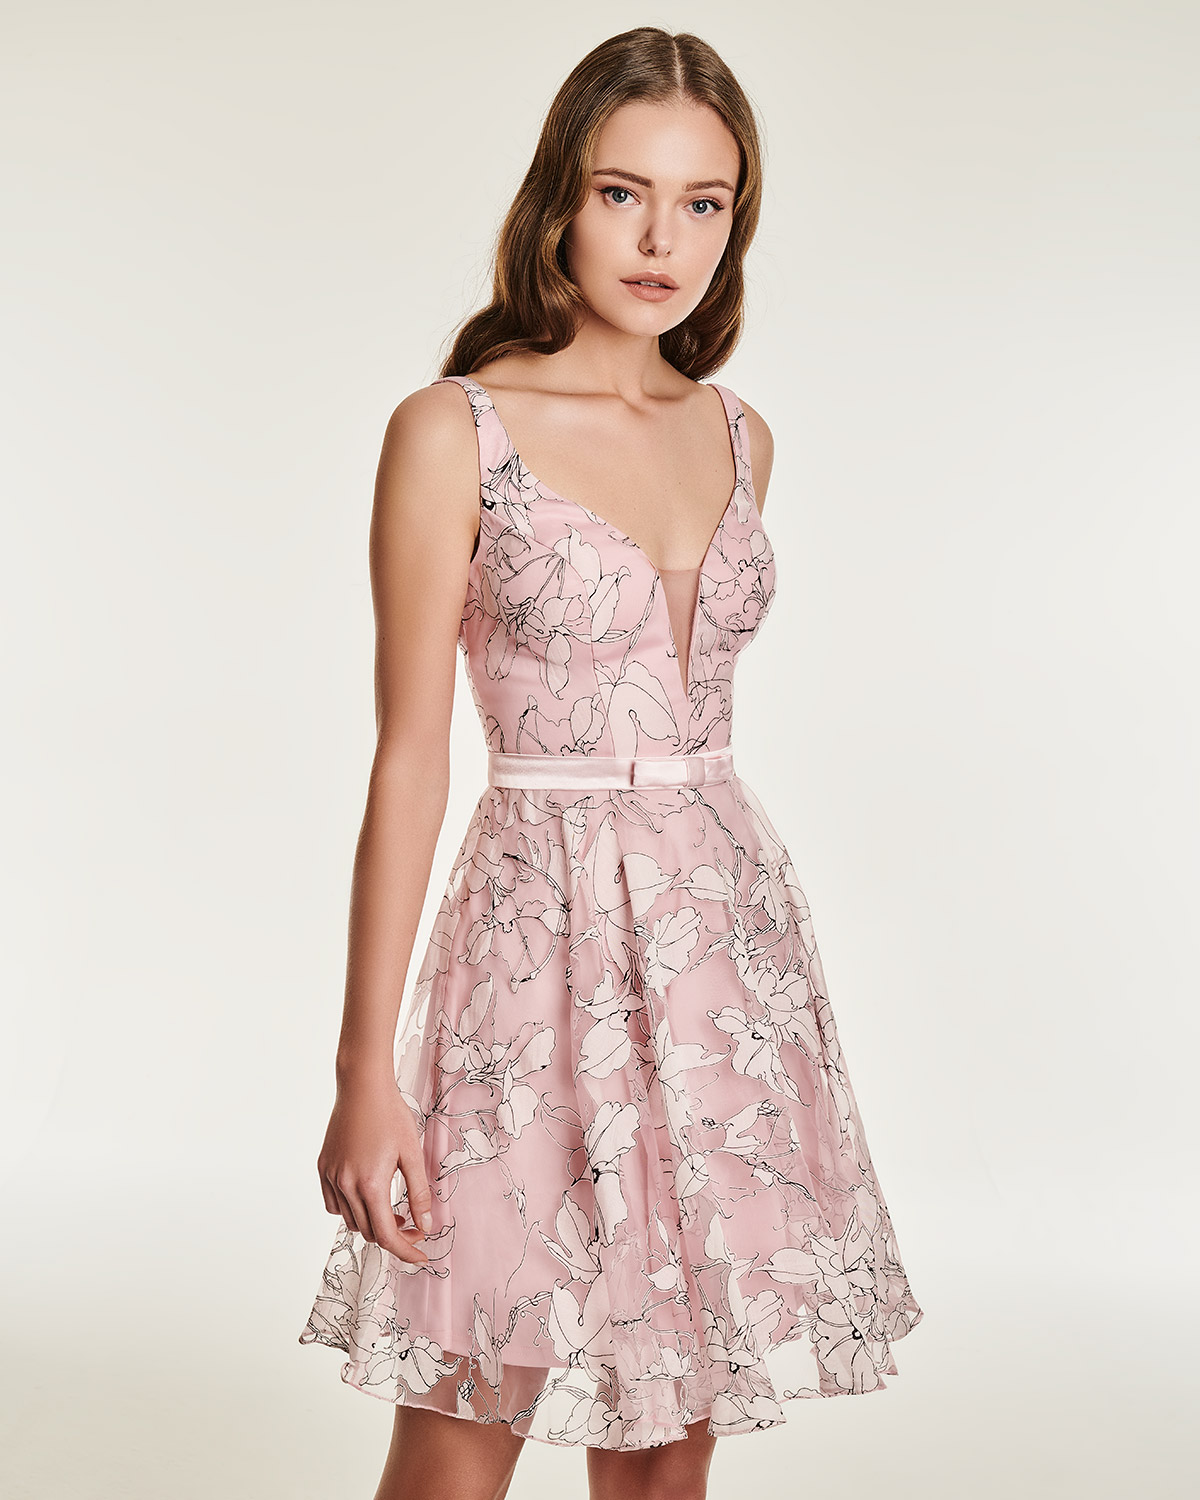 Cocktail Dresses / Cocktail dress with floral motif and narrow belt